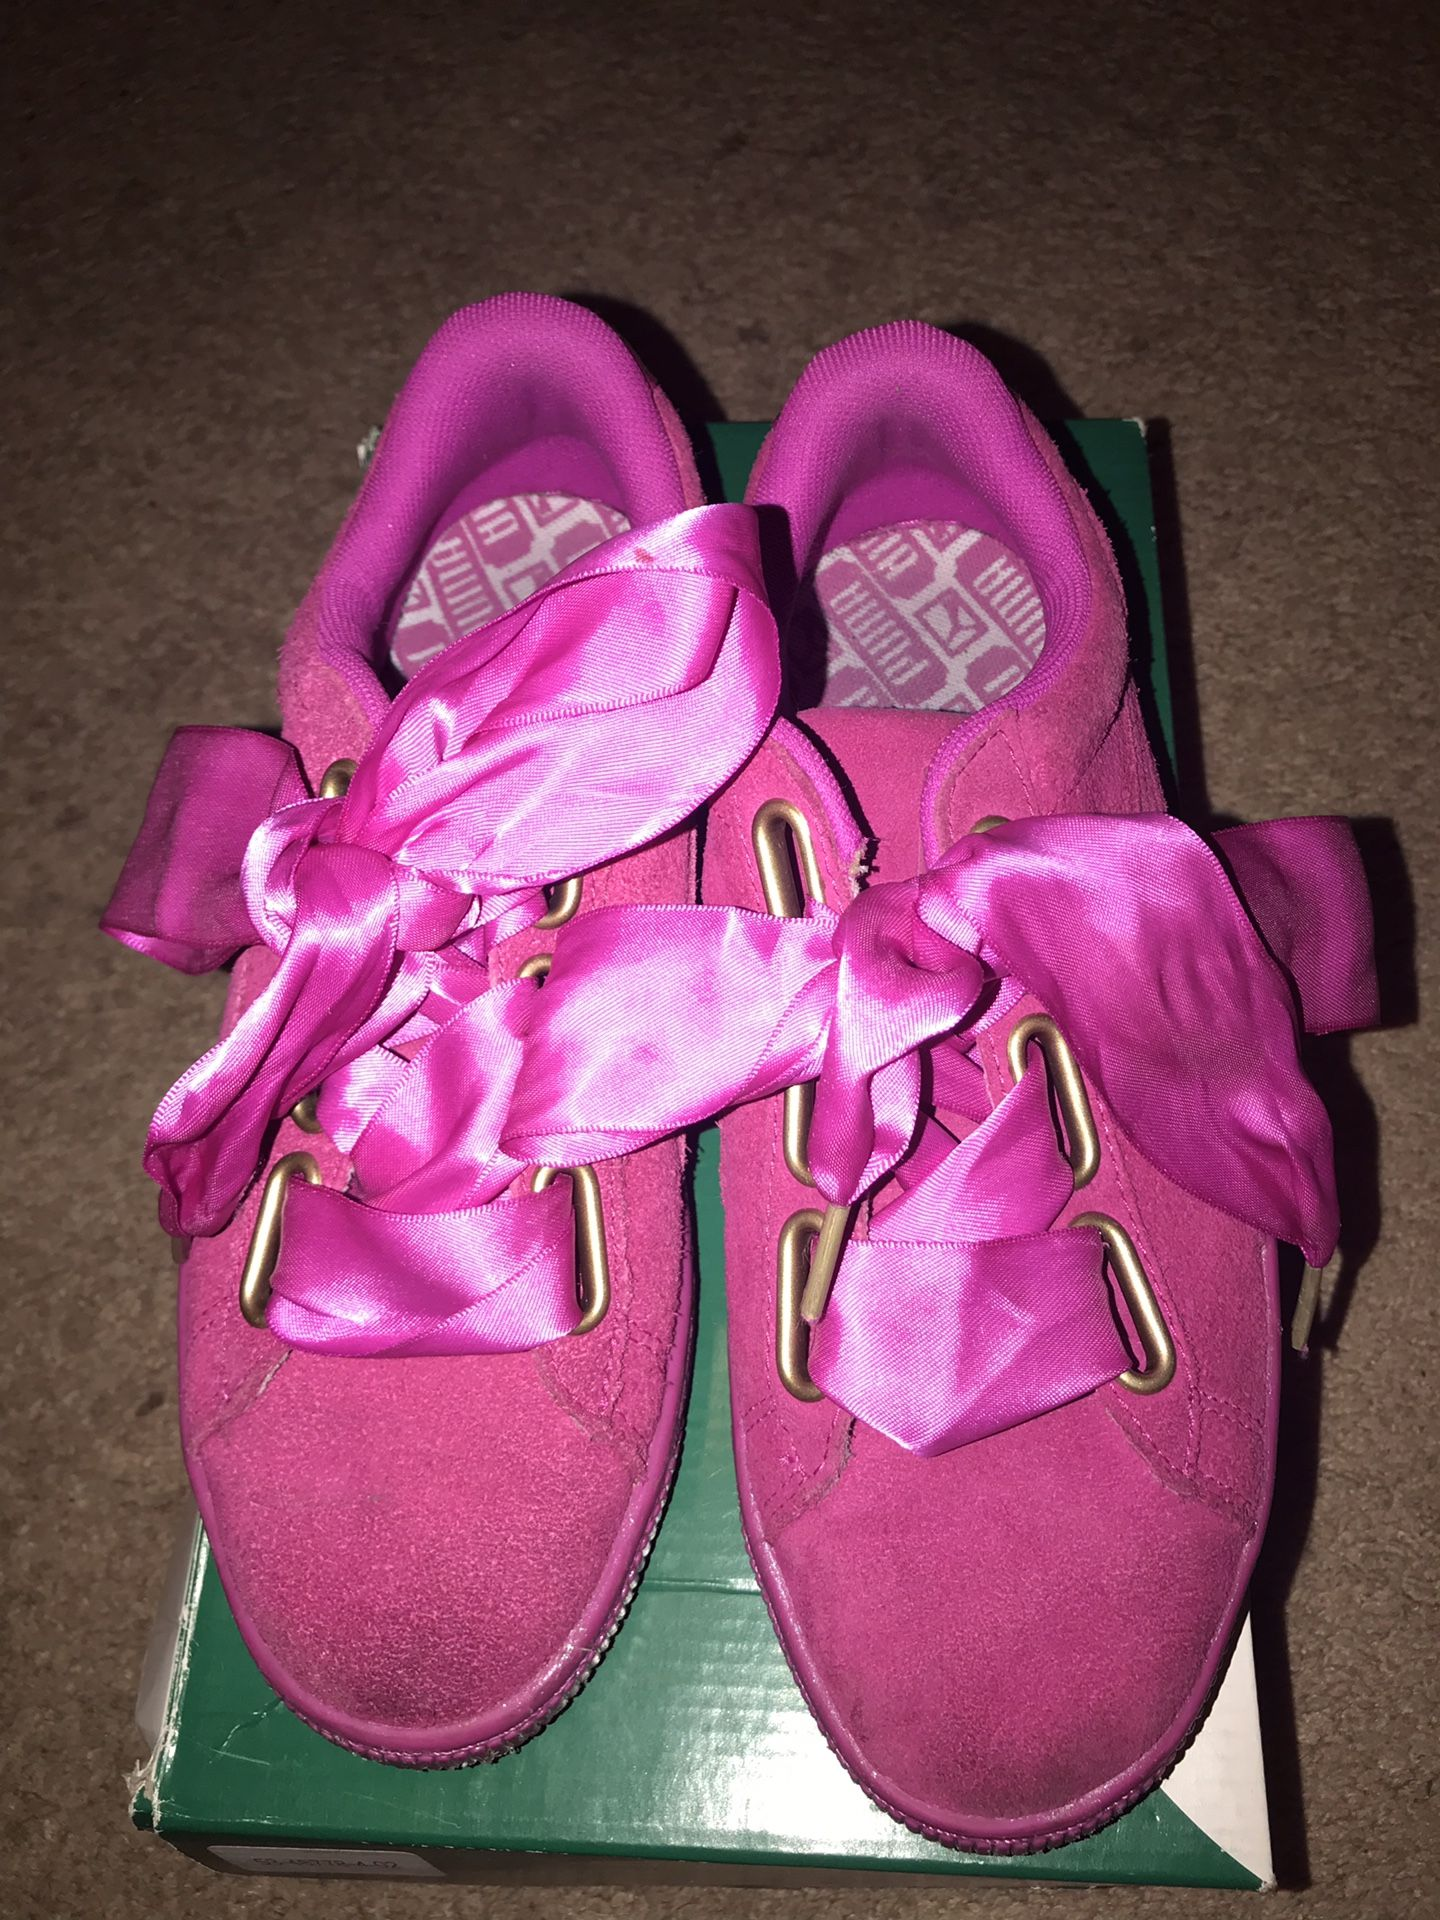 Gently used size 7 hot pink puma shoes with satin bow laces